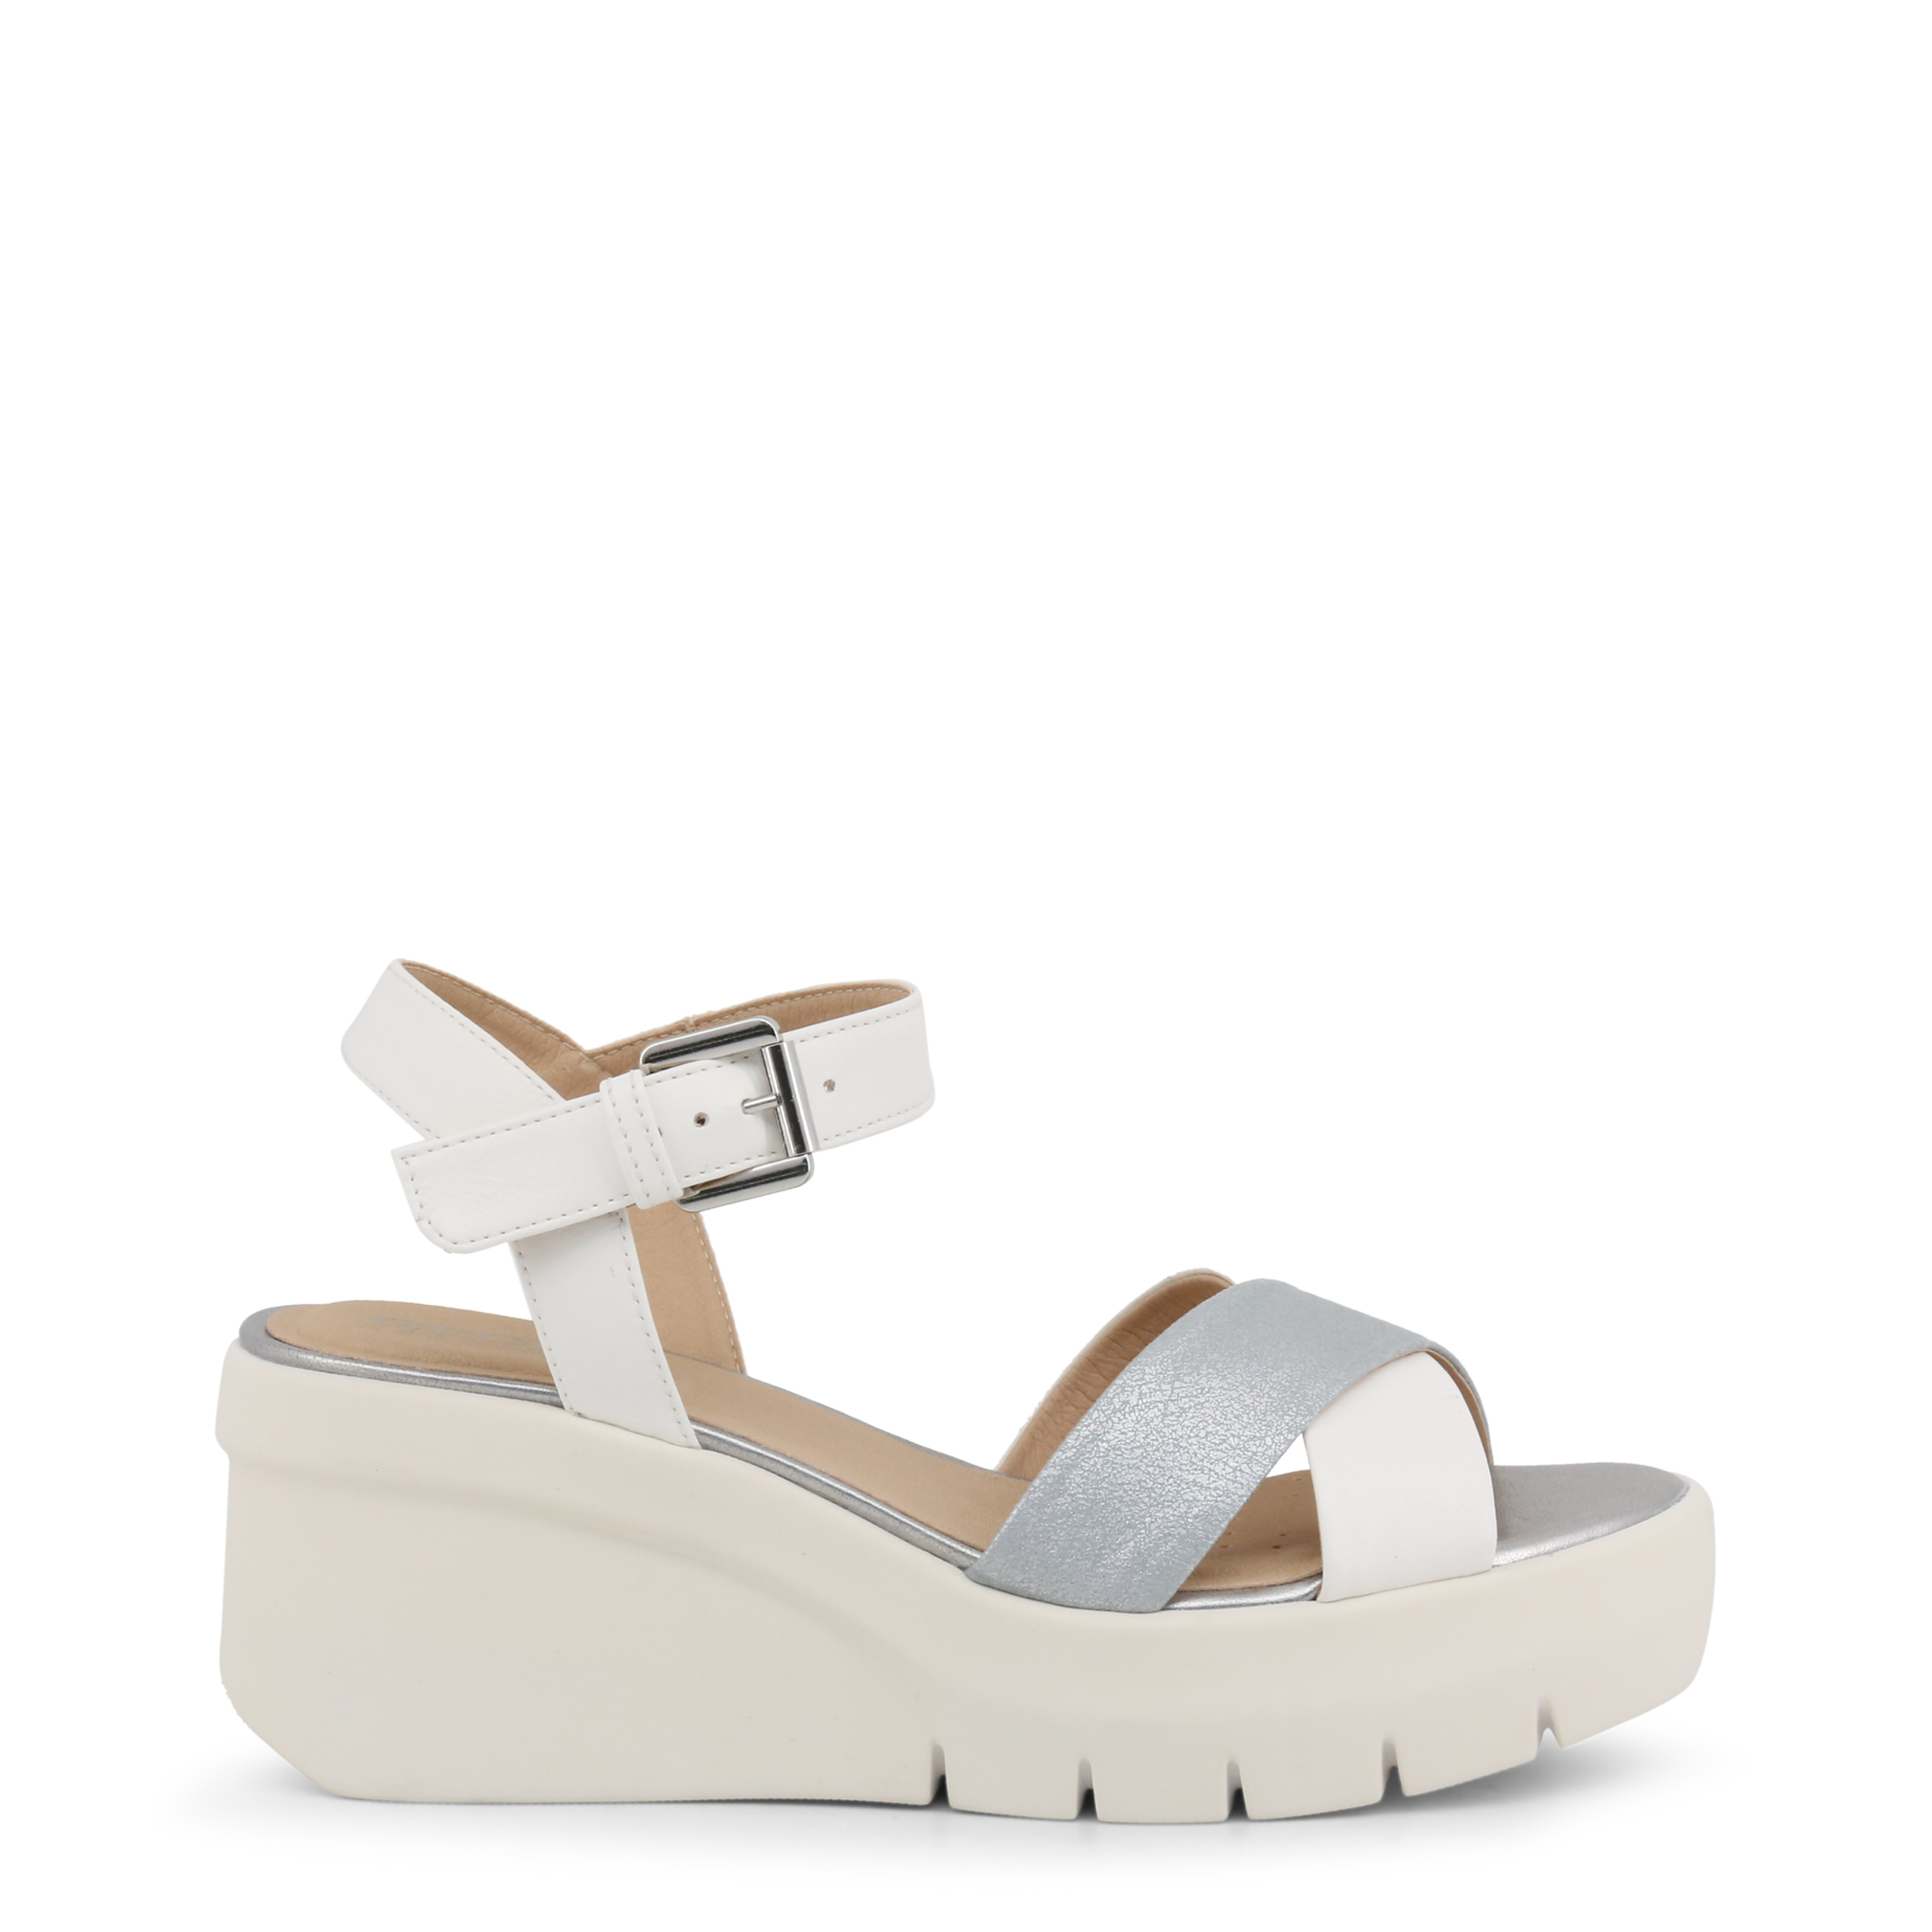 Zeppe Geox TORRENCE Donna Bianco 100579